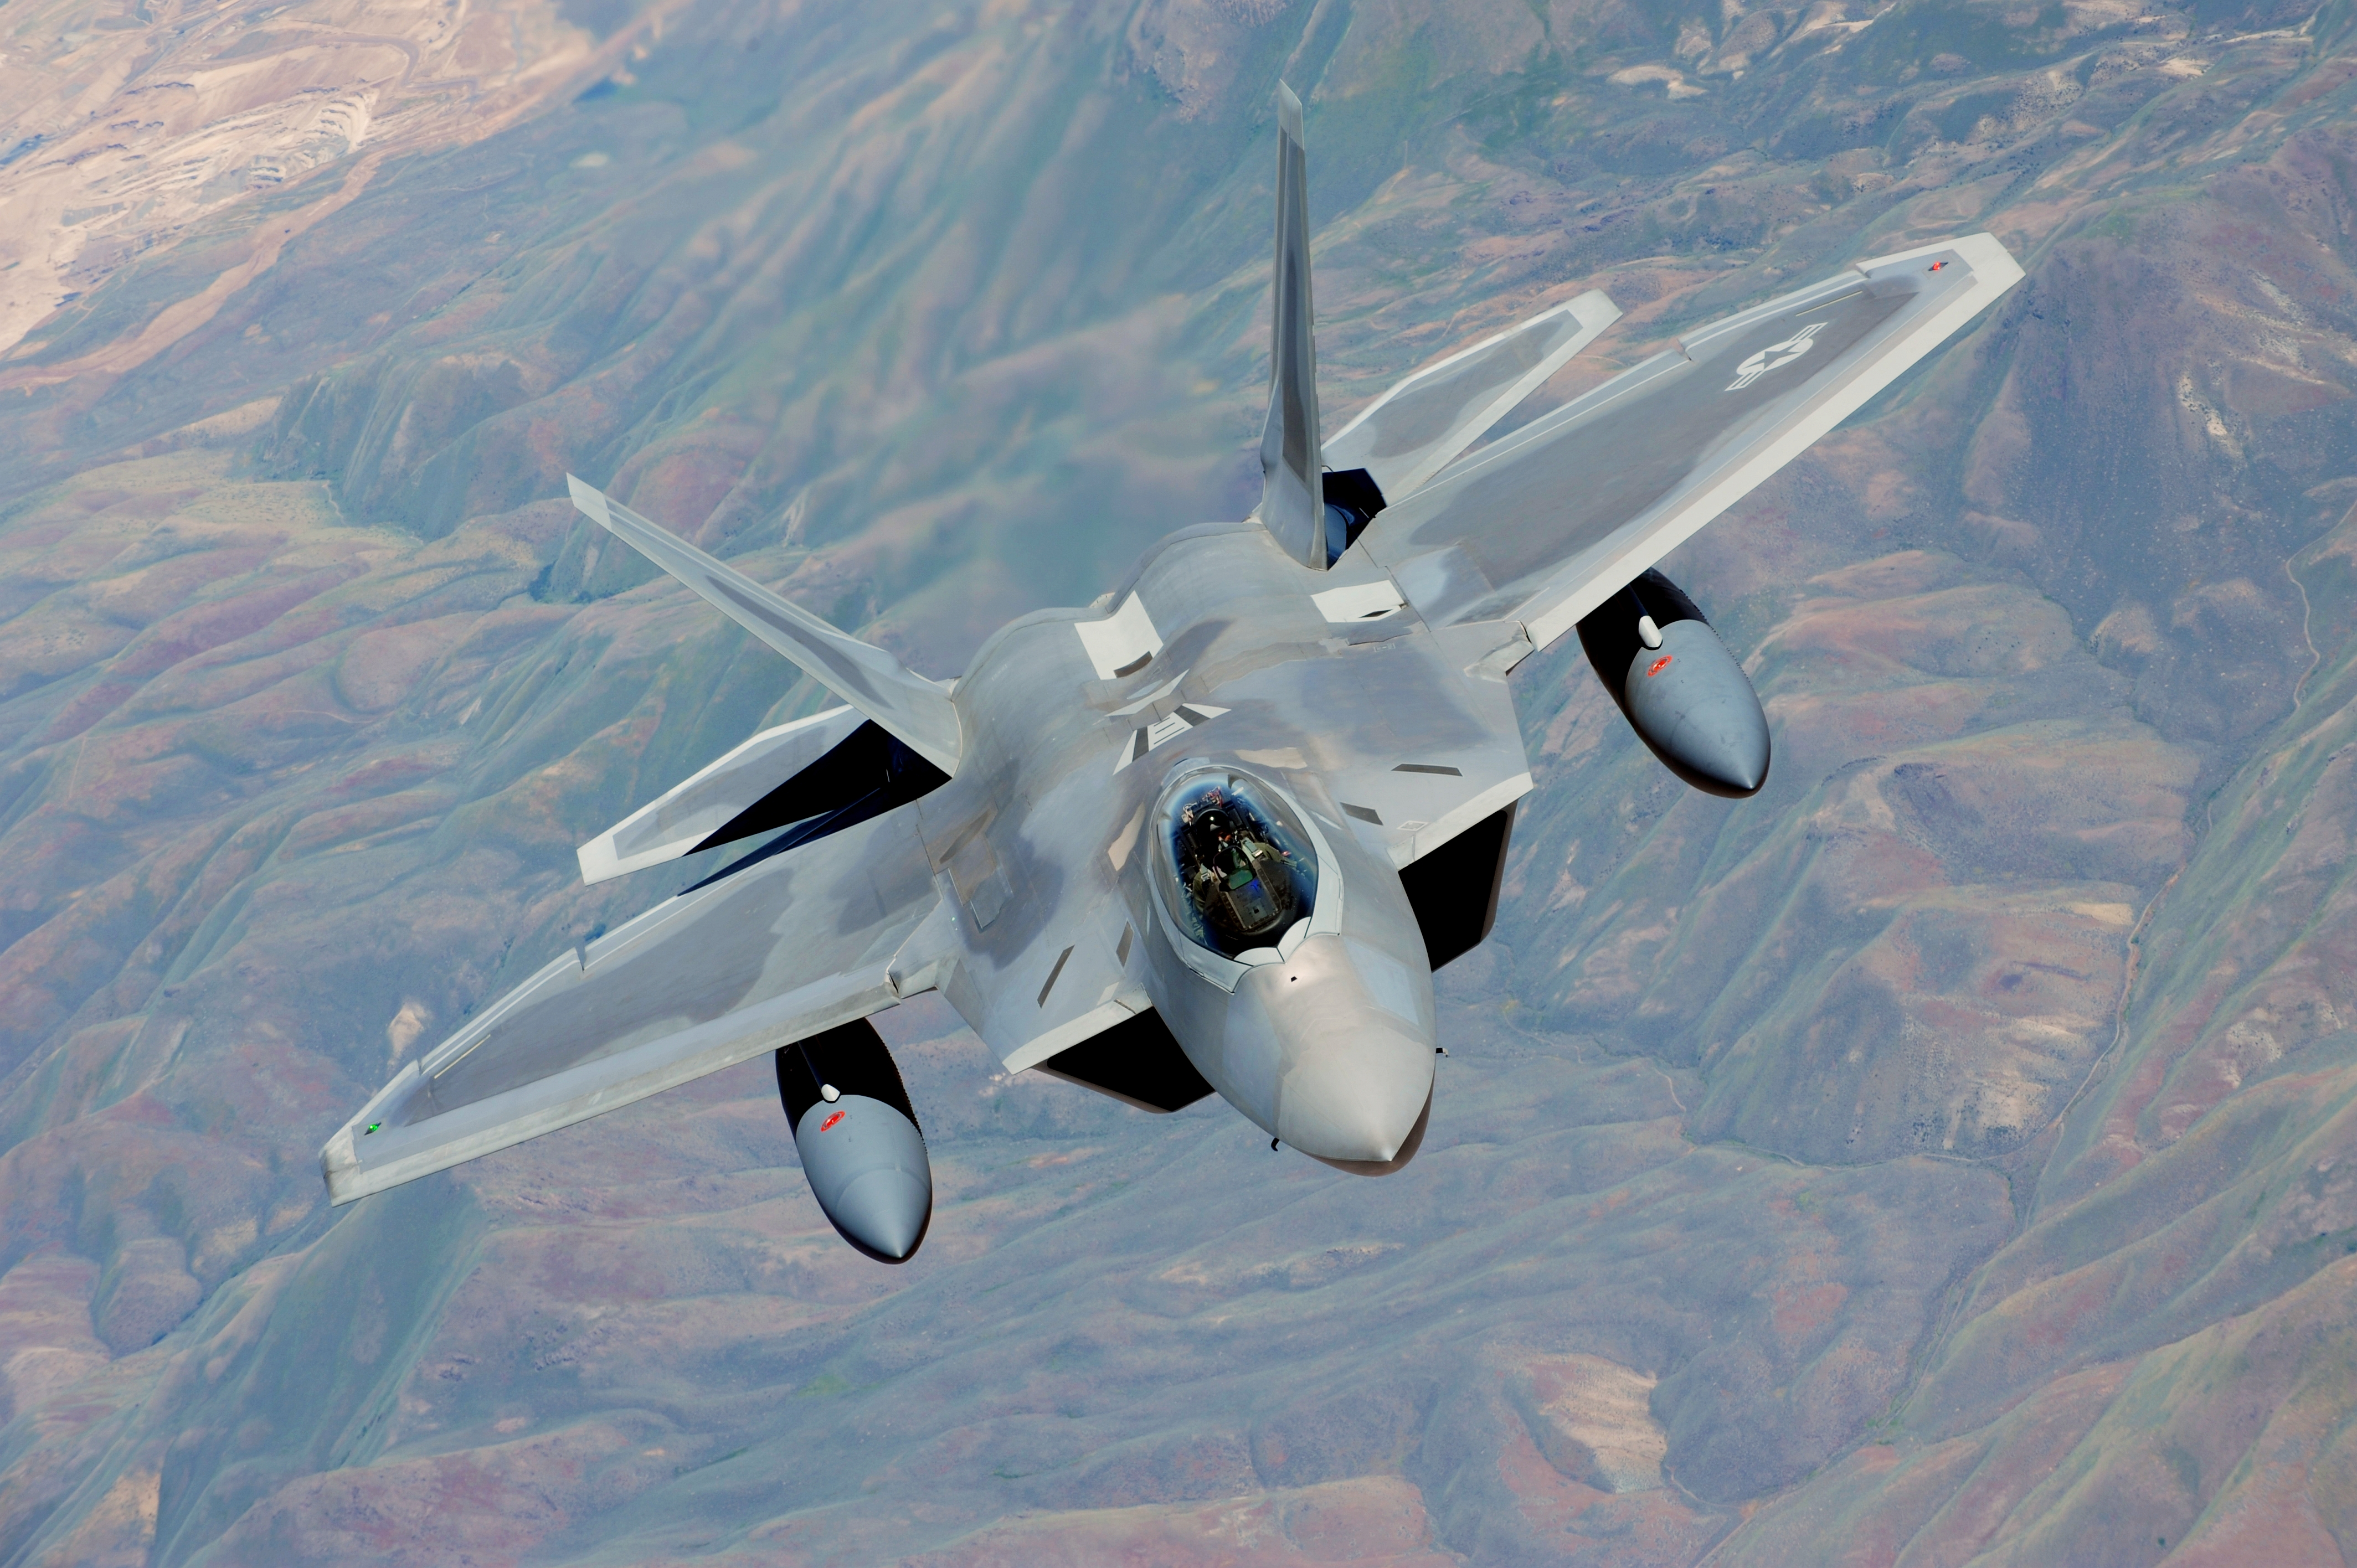 Aircraft Military F 22 Raptor Hd Wallpaper View Resize And